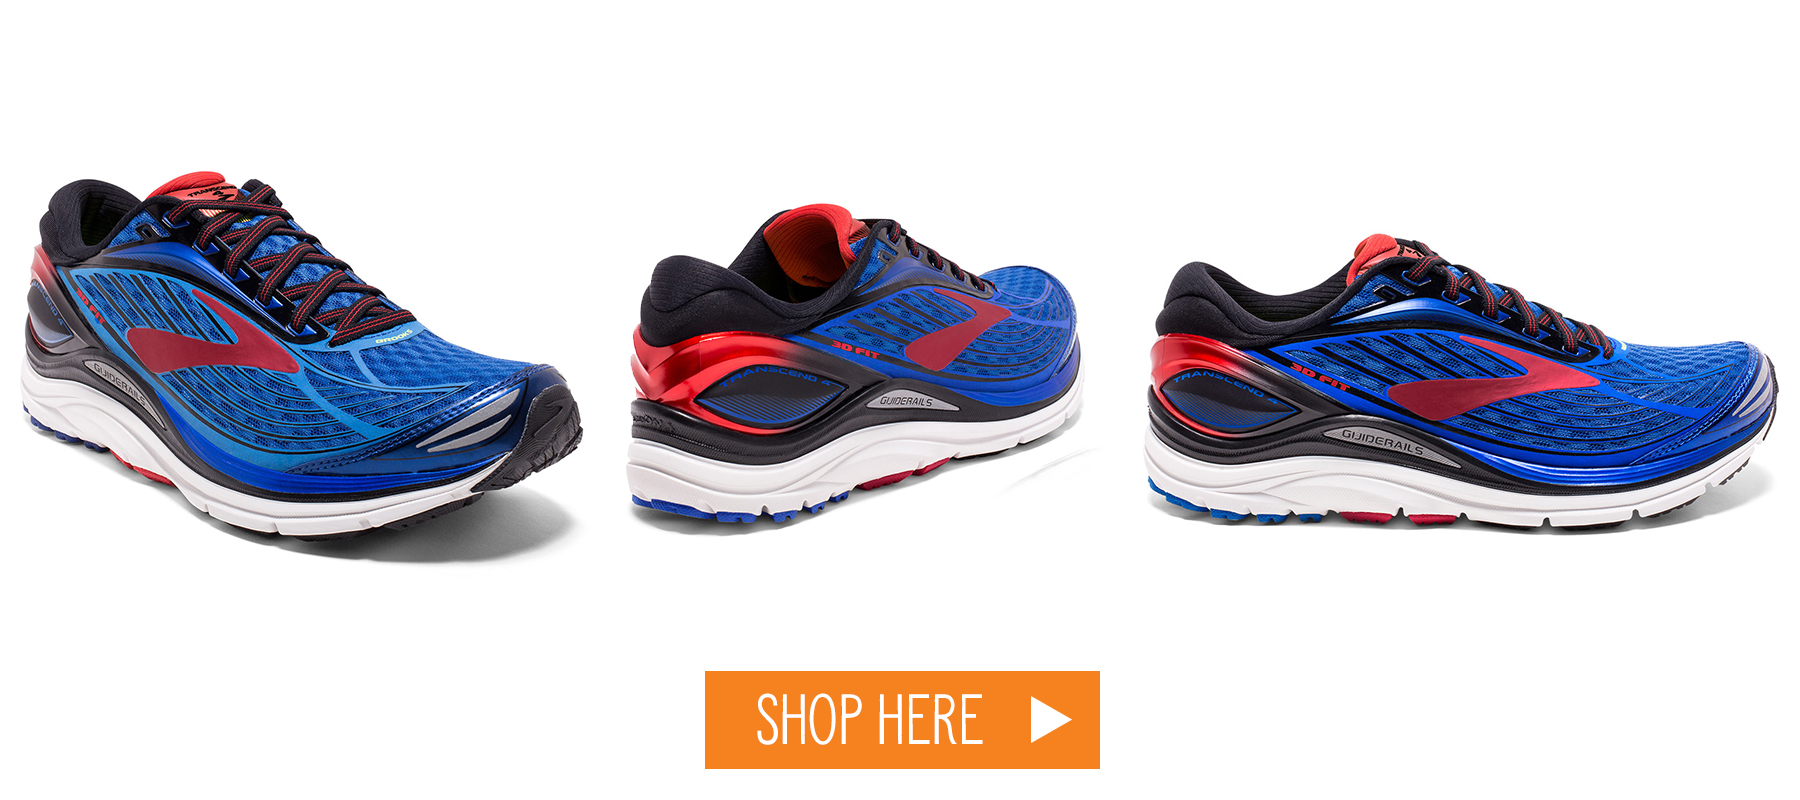 e2d89af6249 Review of the Brooks Transcend 4 running shoes